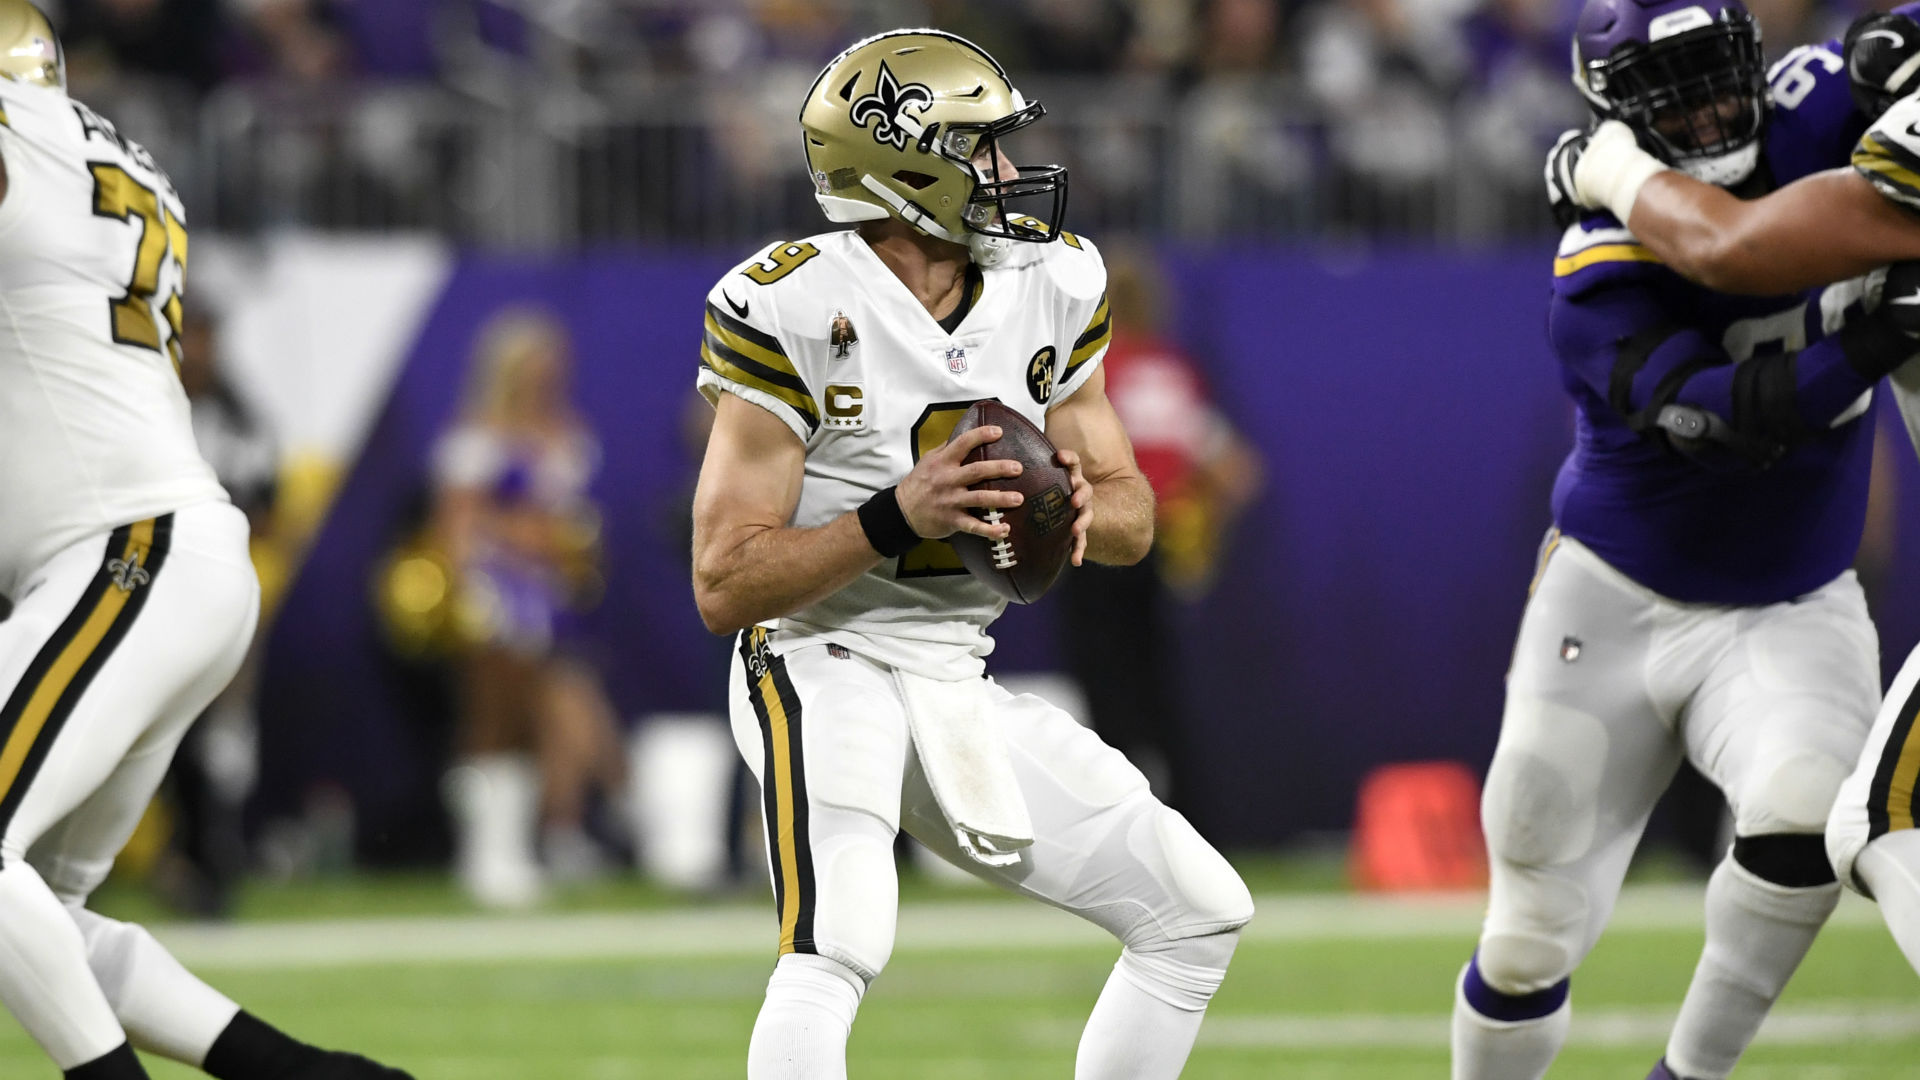 Pro Bowl 2019 Chargers lead NFL with 7 selections Drew Brees 1920x1080